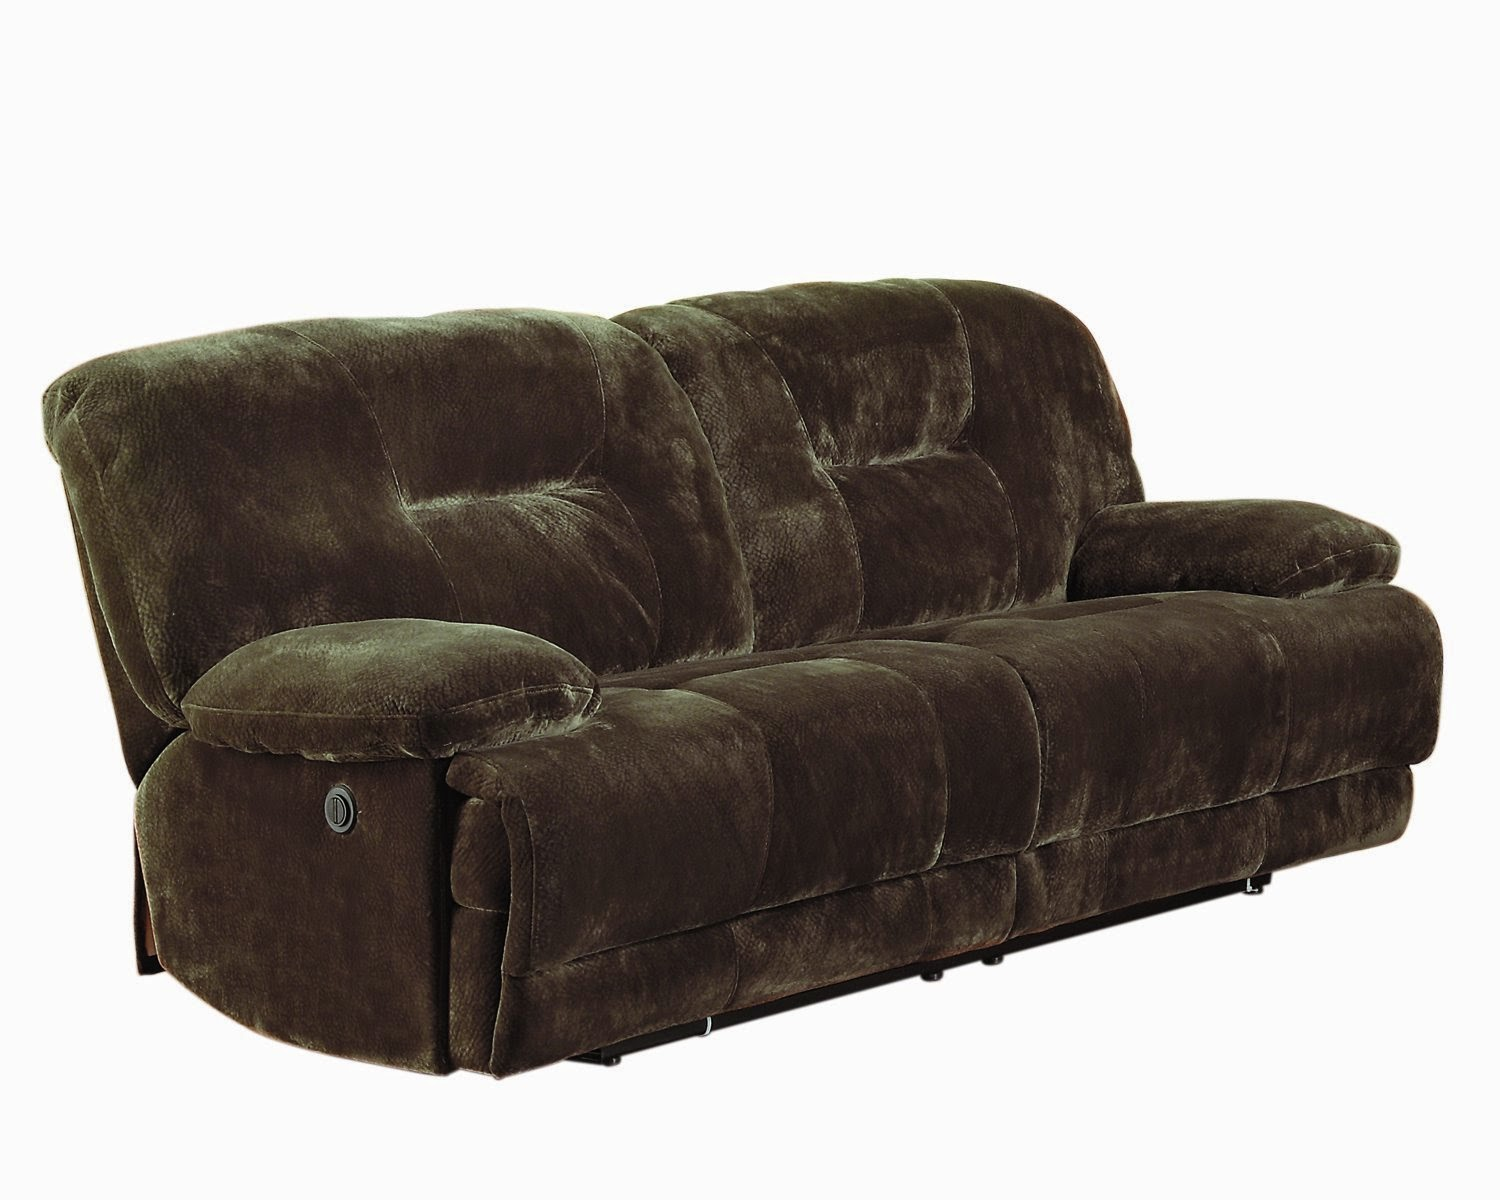 Chateau Dax Furniture Reviews: The Best Power Reclining Sofa Reviews: Dual Power